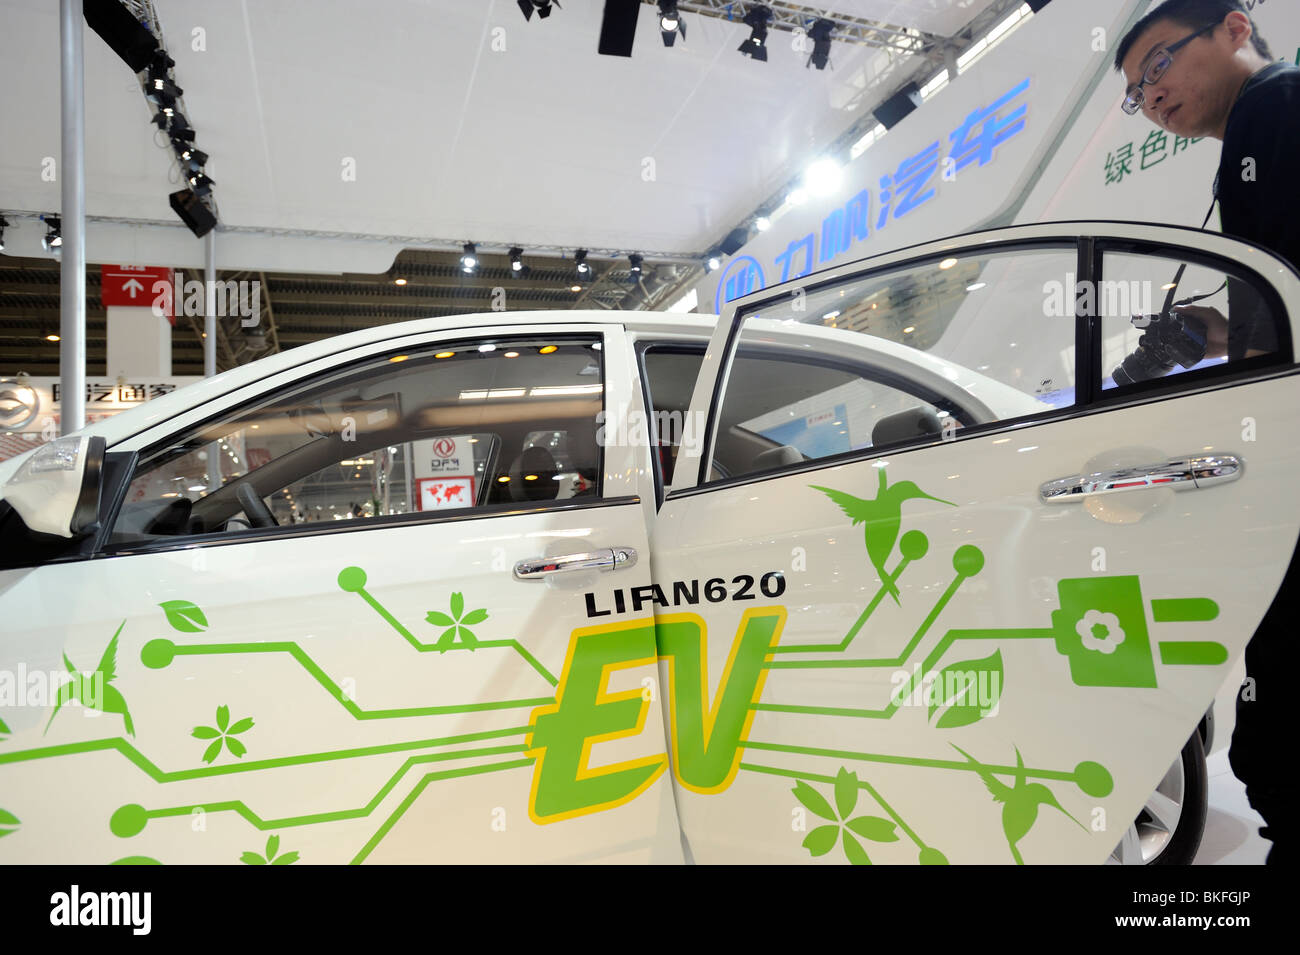 A man looks at a Lifan 620 EV at the Beijing Auto Show in Beijing, China. 24-Apr-2010 - Stock Image